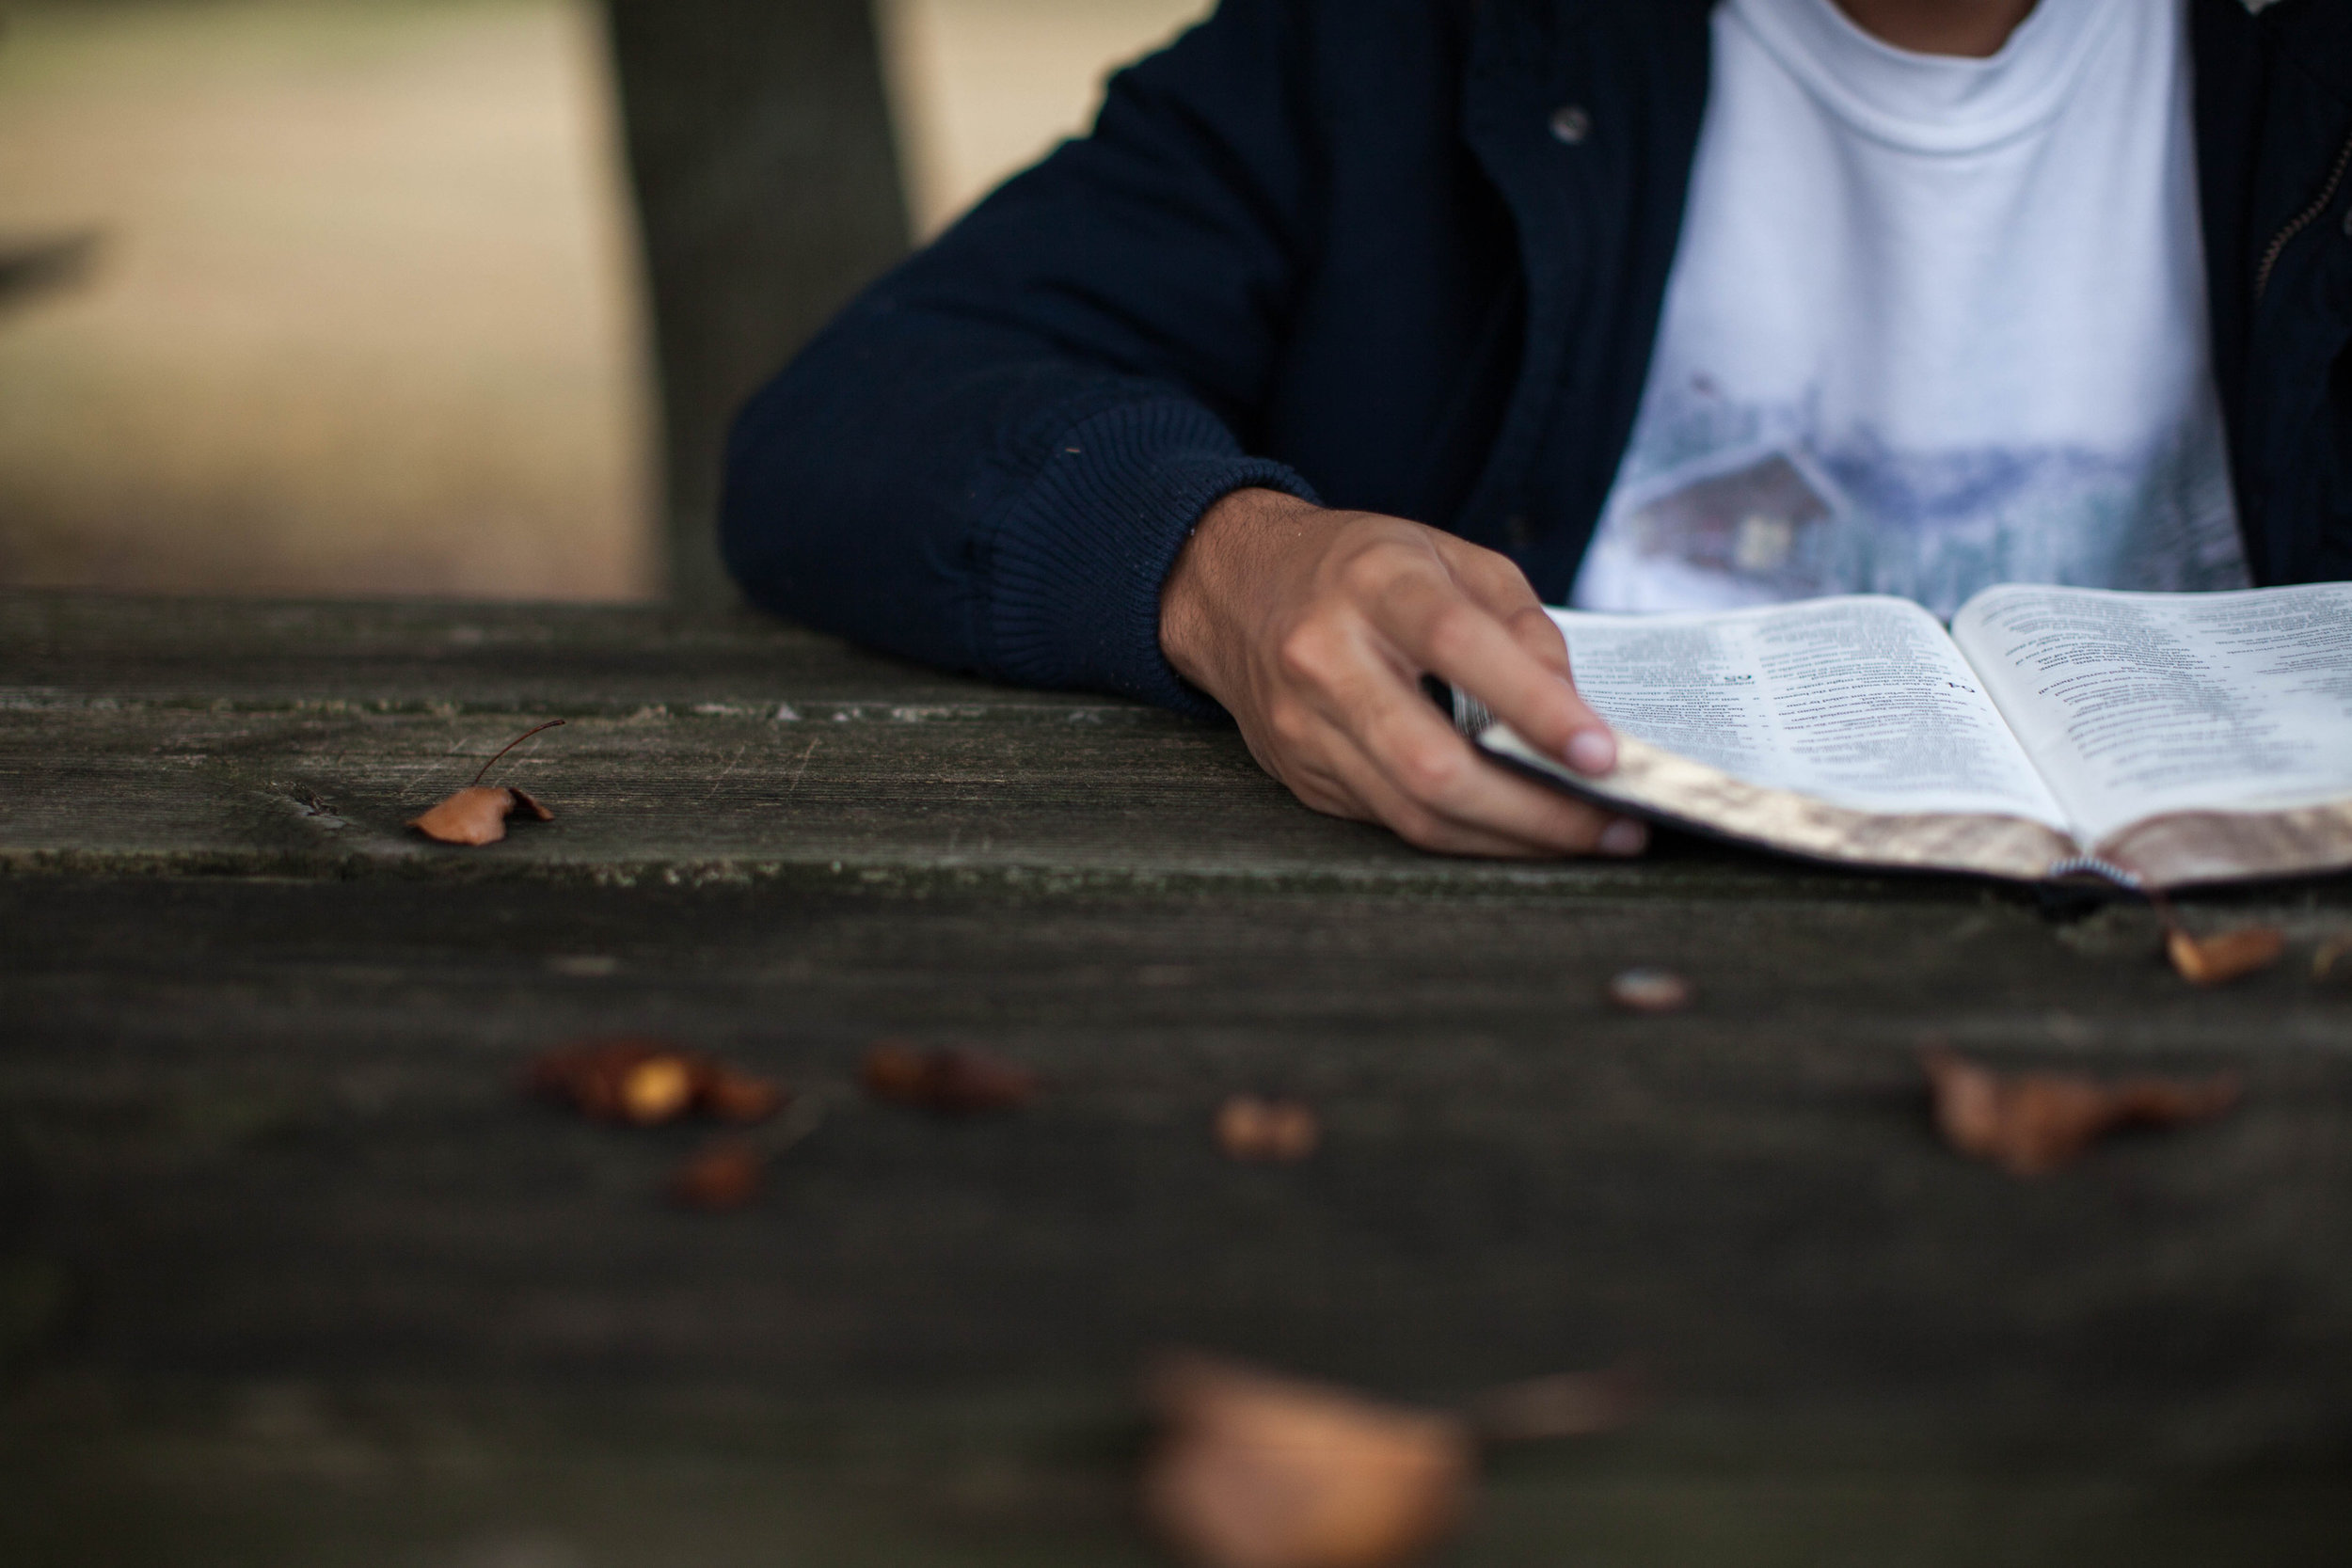 read_bible_at_wood_table.jpg